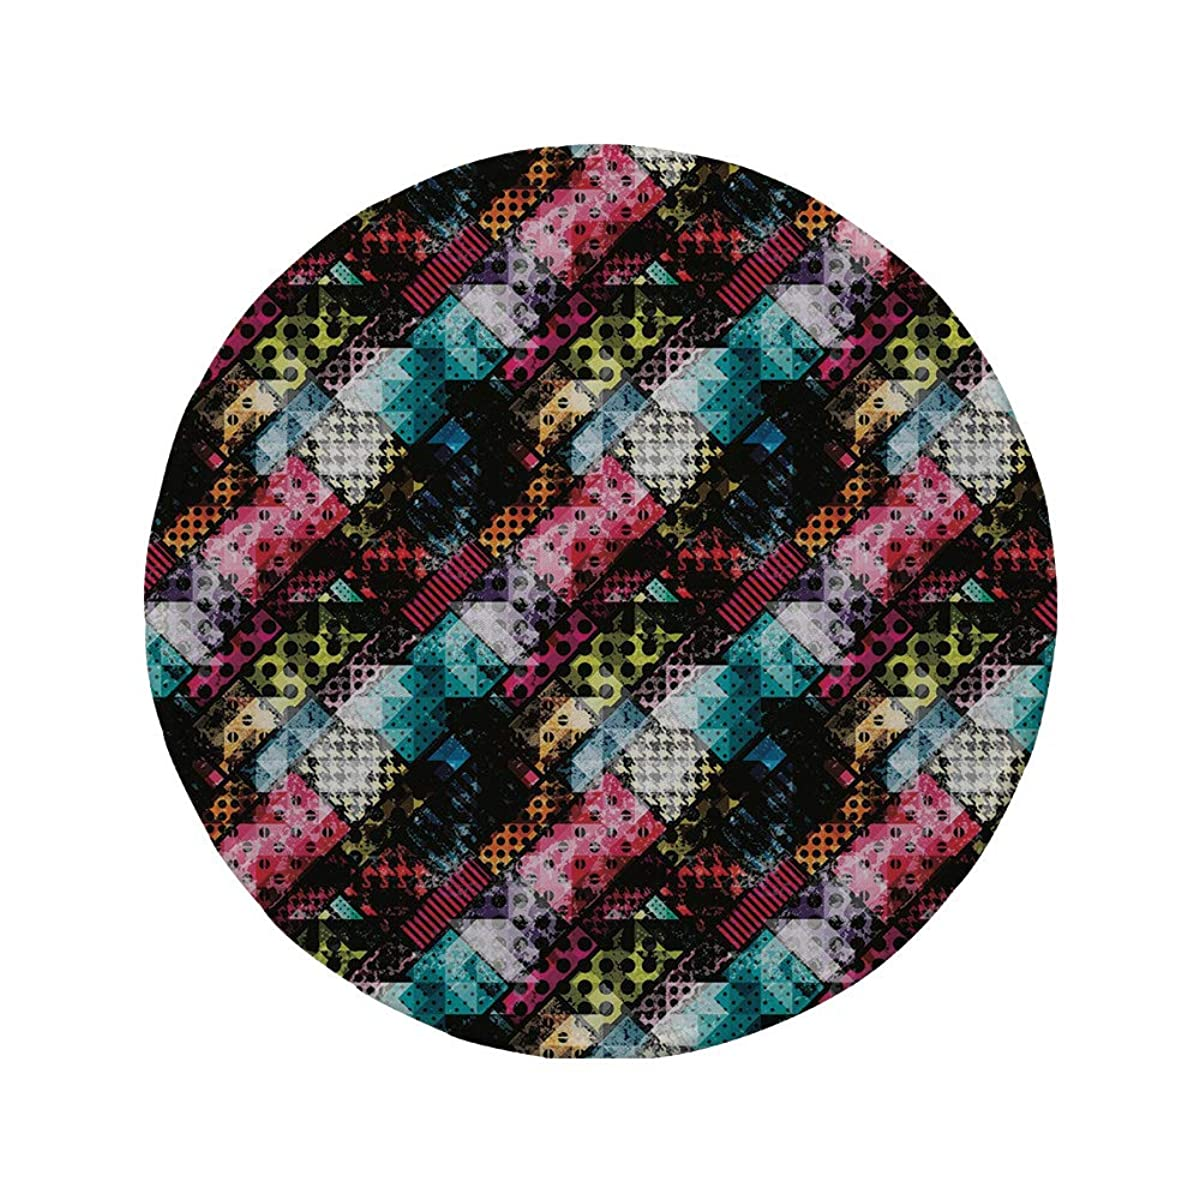 Non-Slip Rubber Round Mouse Pad,Abstract,Grunge Modern with Polka Dots Tartan Murky Toned Effects Diagonals Kitsch Pattern Decorative,Multicolor,7.87